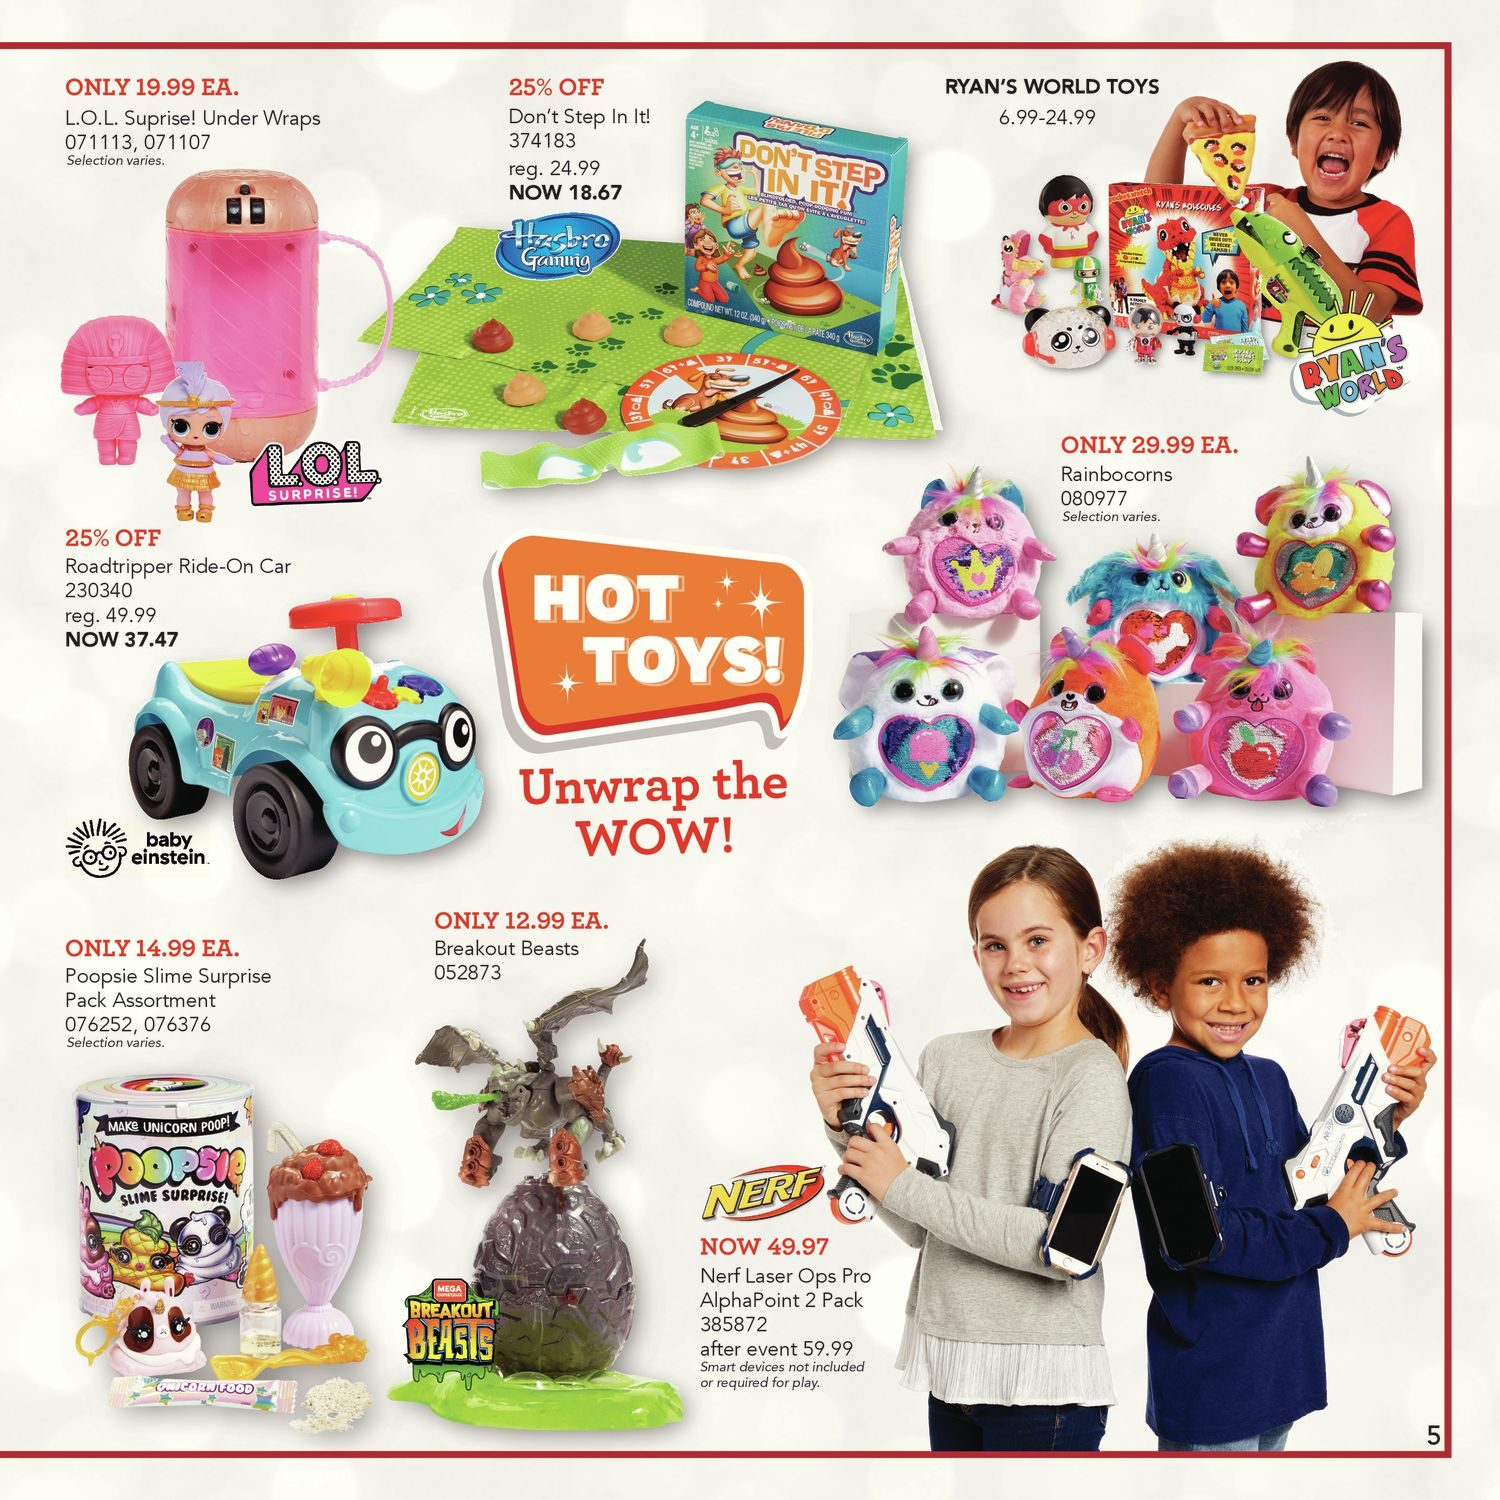 Toys R Us Weekly Flyer Ultimate Toy Guide 2018 Nov 2 15 Garage Wire Diagram Air Hogs Ride